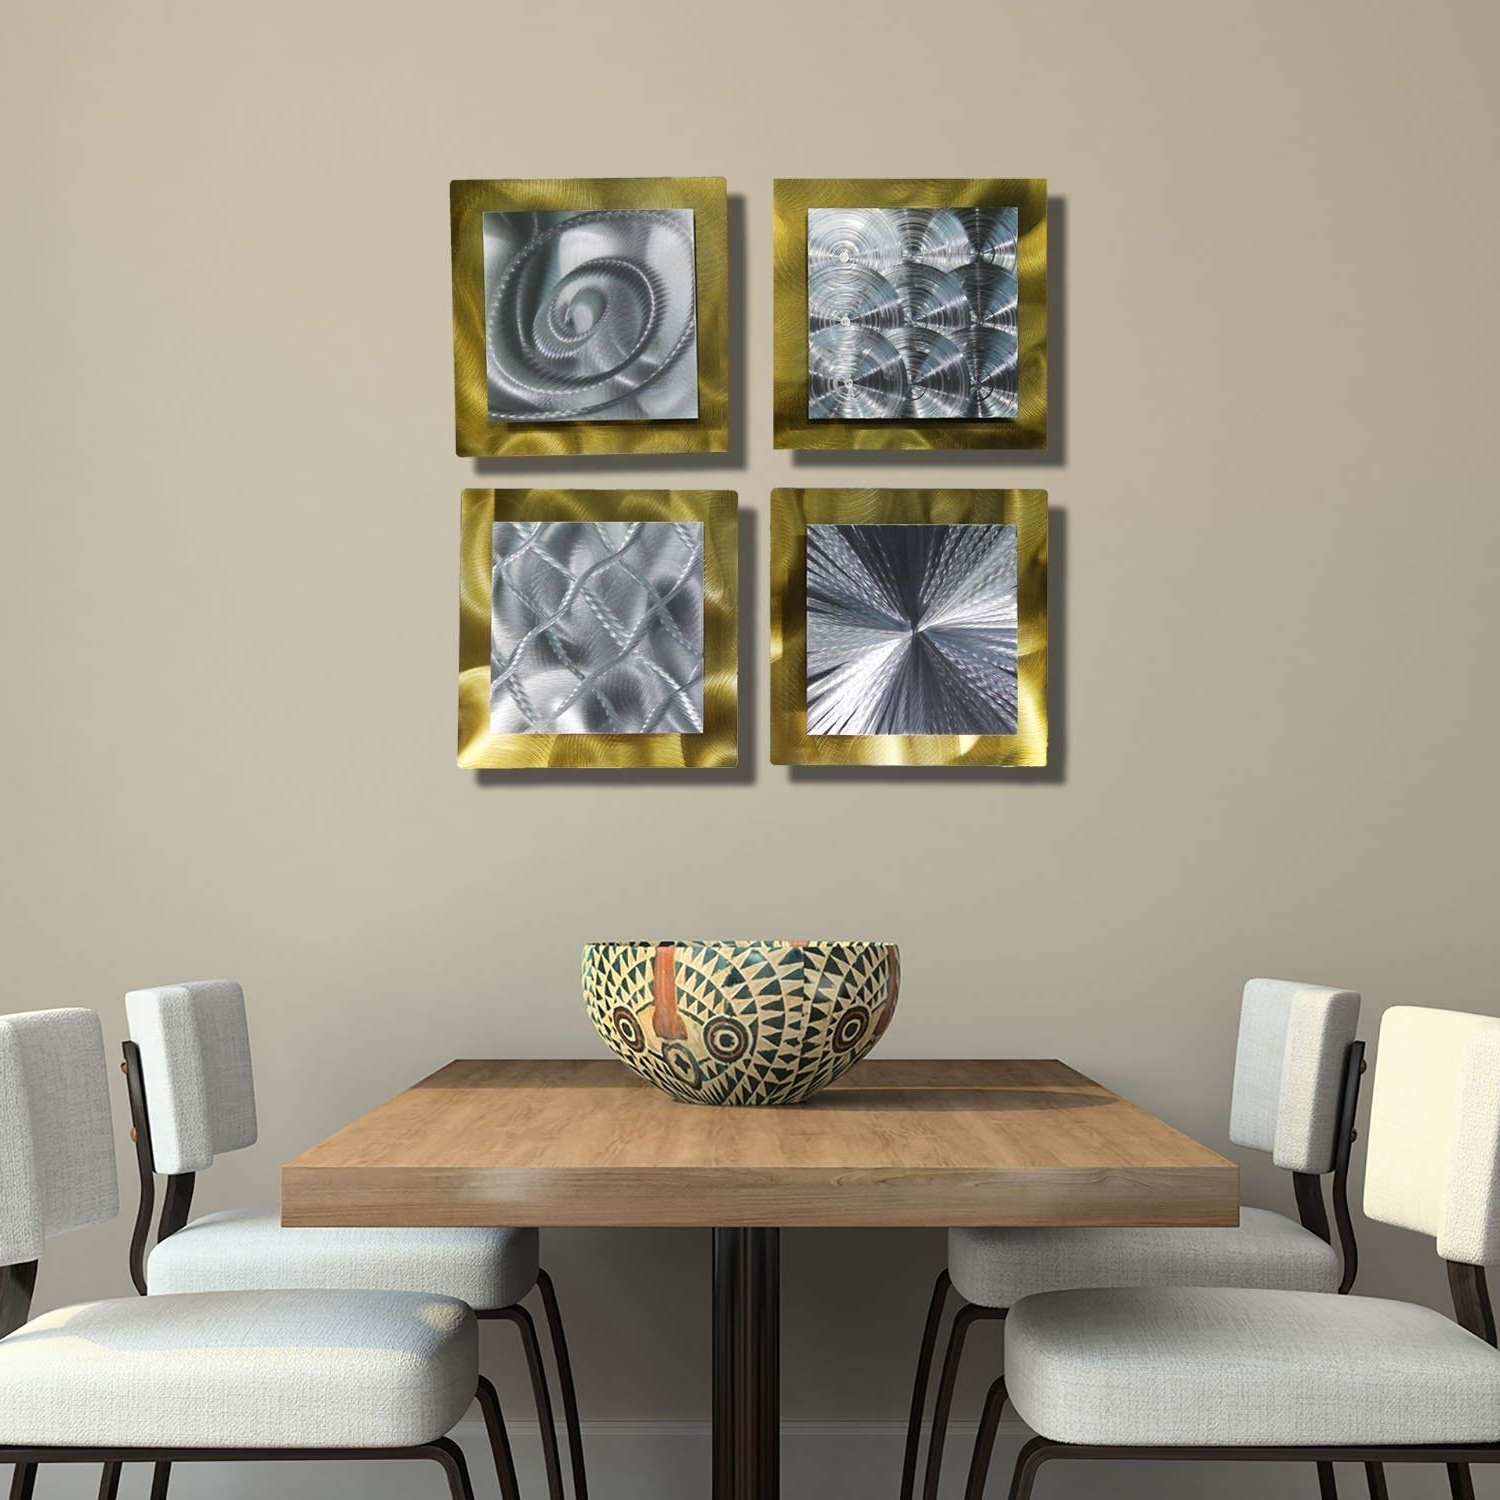 Amazon: Statements2000 Gold & Silver Contemporary Metal Wall Art Within Most Current Contemporary Metal Wall Art (View 9 of 15)